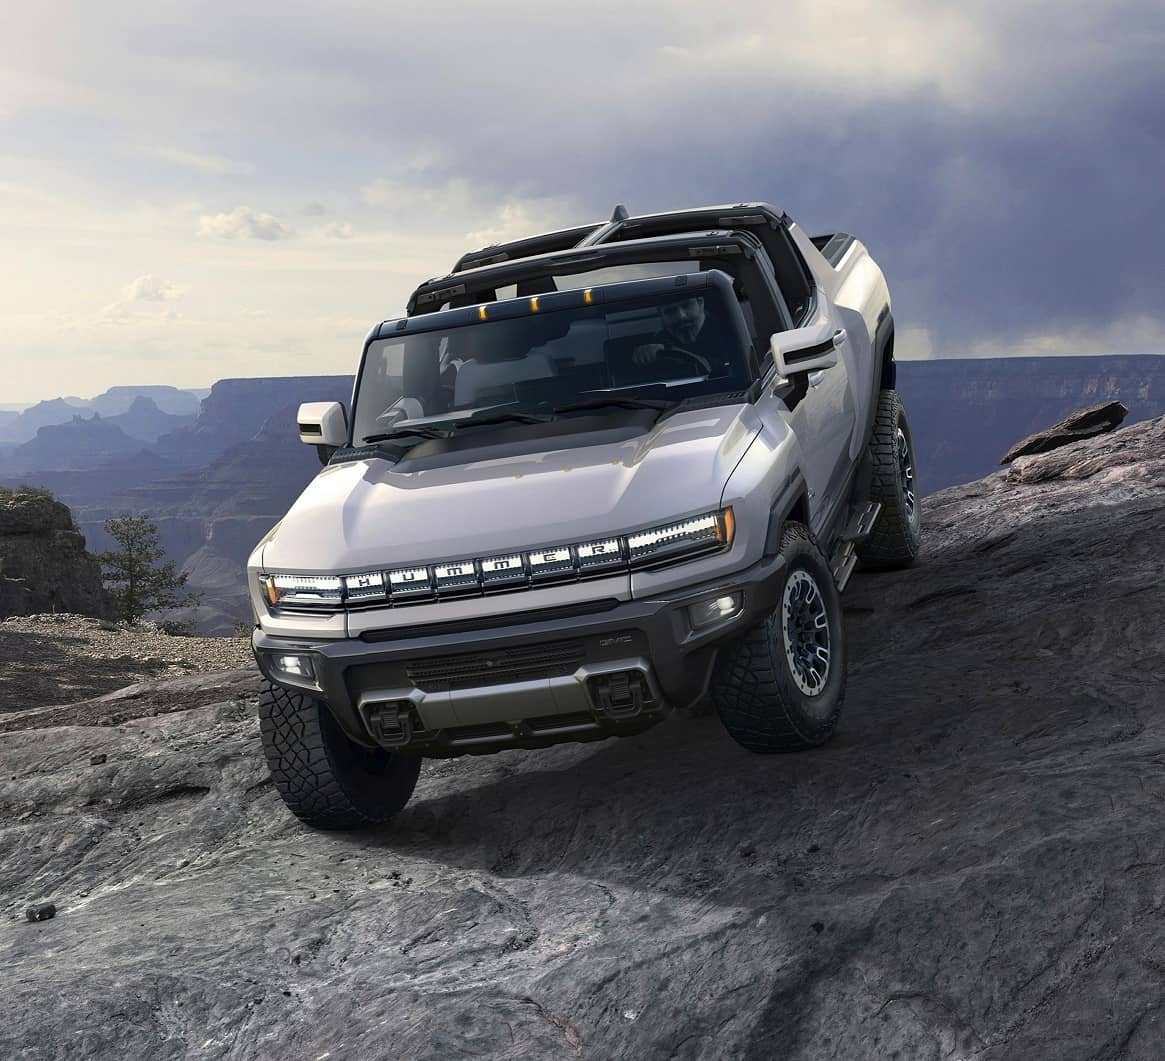 AN ELECTRIC HUMMER? BATTERY POWERED TRUCKS HEAD TO SHOWROOMS